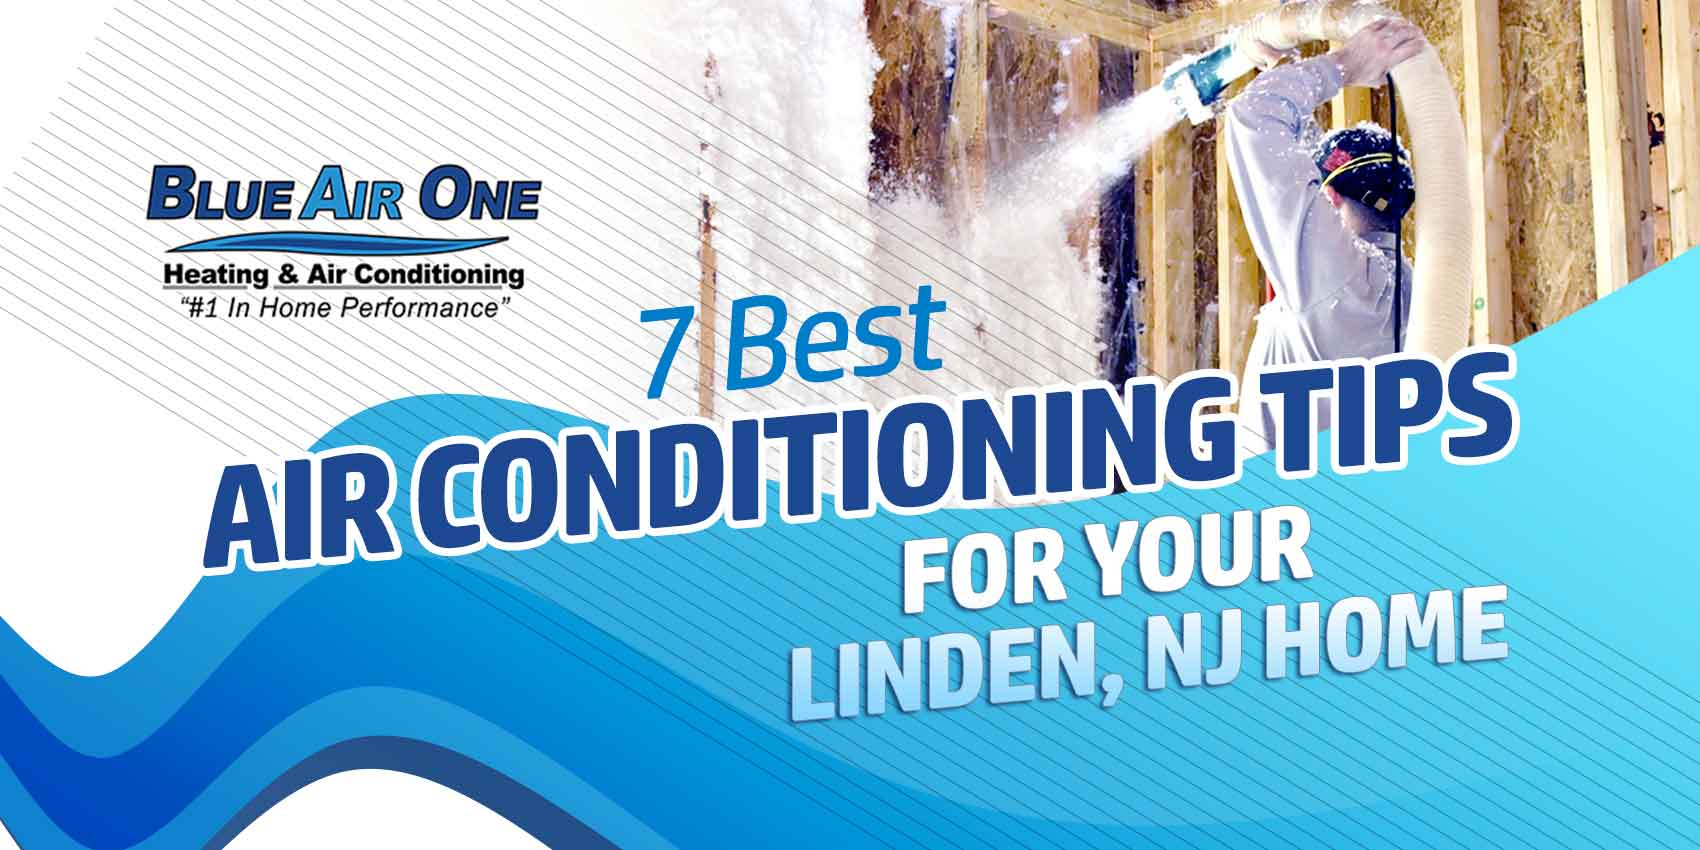 7 Best Air Conditioning Tips for Your Linden, NJ Home